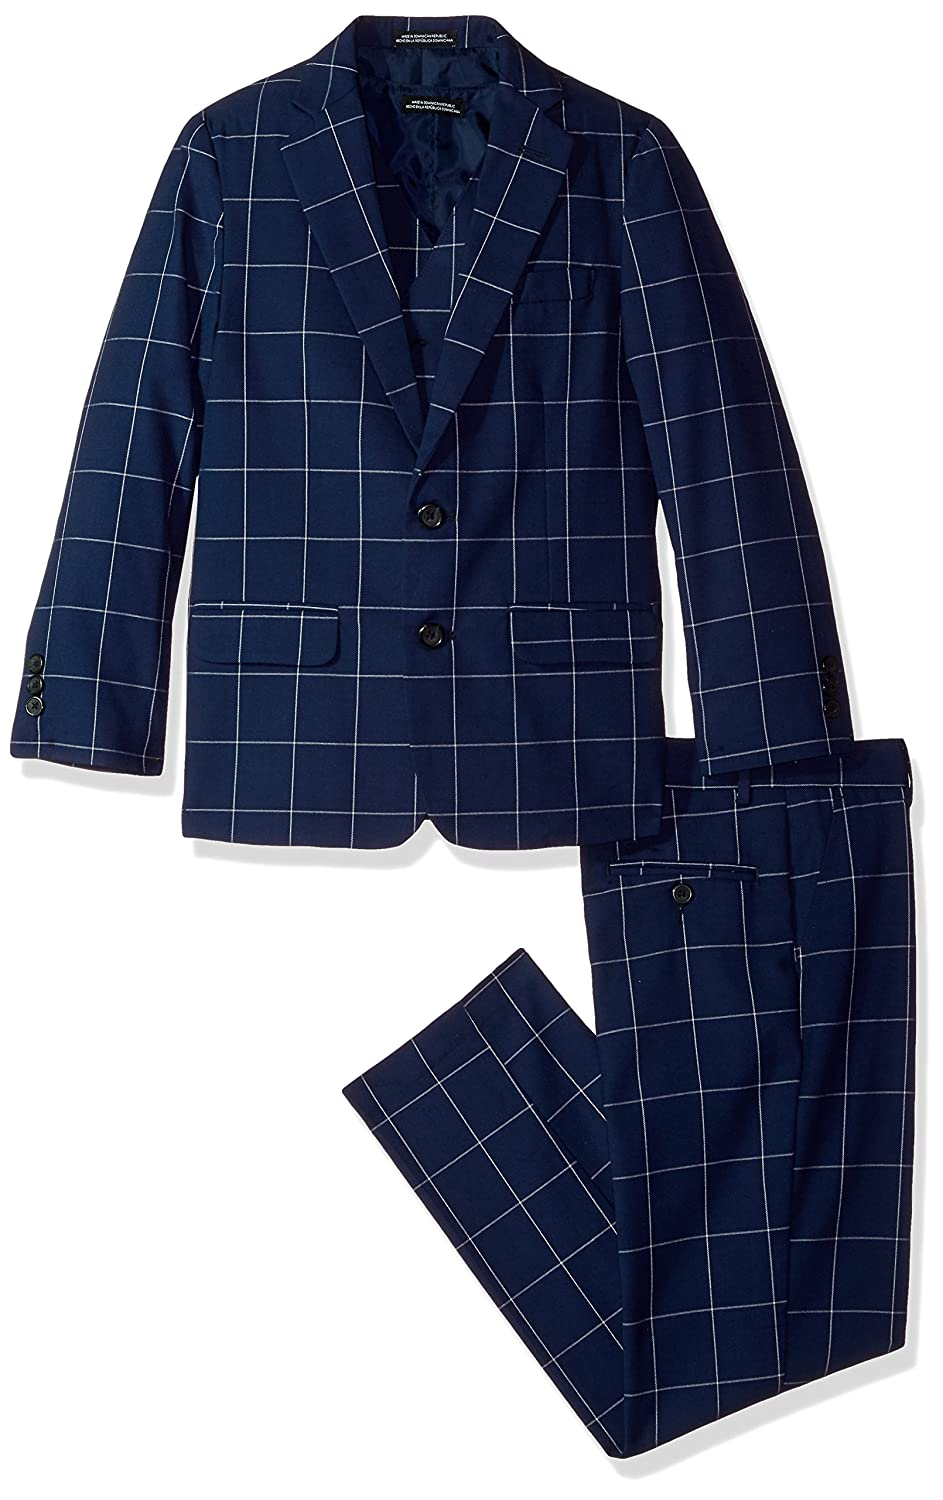 1930s Childrens Fashion: Girls, Boys, Toddler, Baby Costumes Steve Harvey Big Boys Three Piece Suit Set $32.16 AT vintagedancer.com